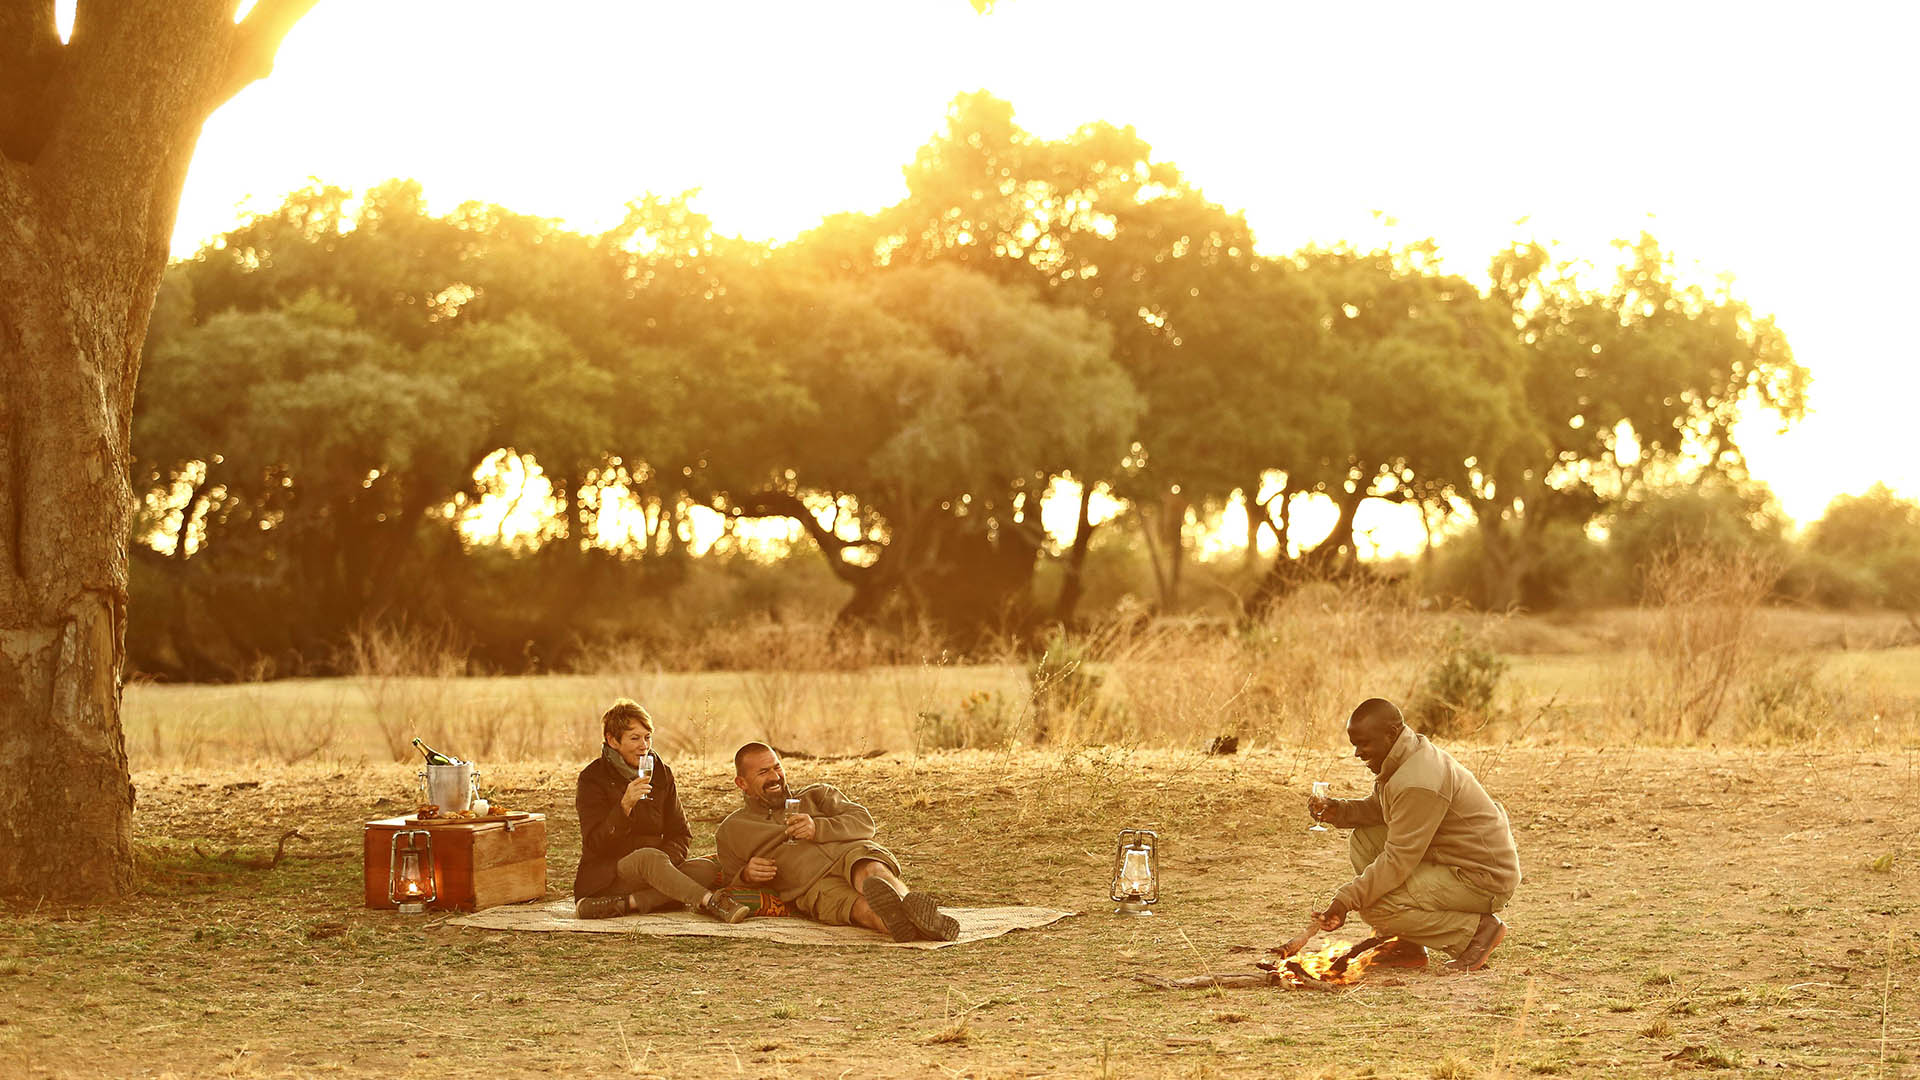 honeymoon-lion-camp-sundowners-malawian-style-malawi-adventures-experiences-holidays-specialist-tour-operator-zambia-mozambique-africa